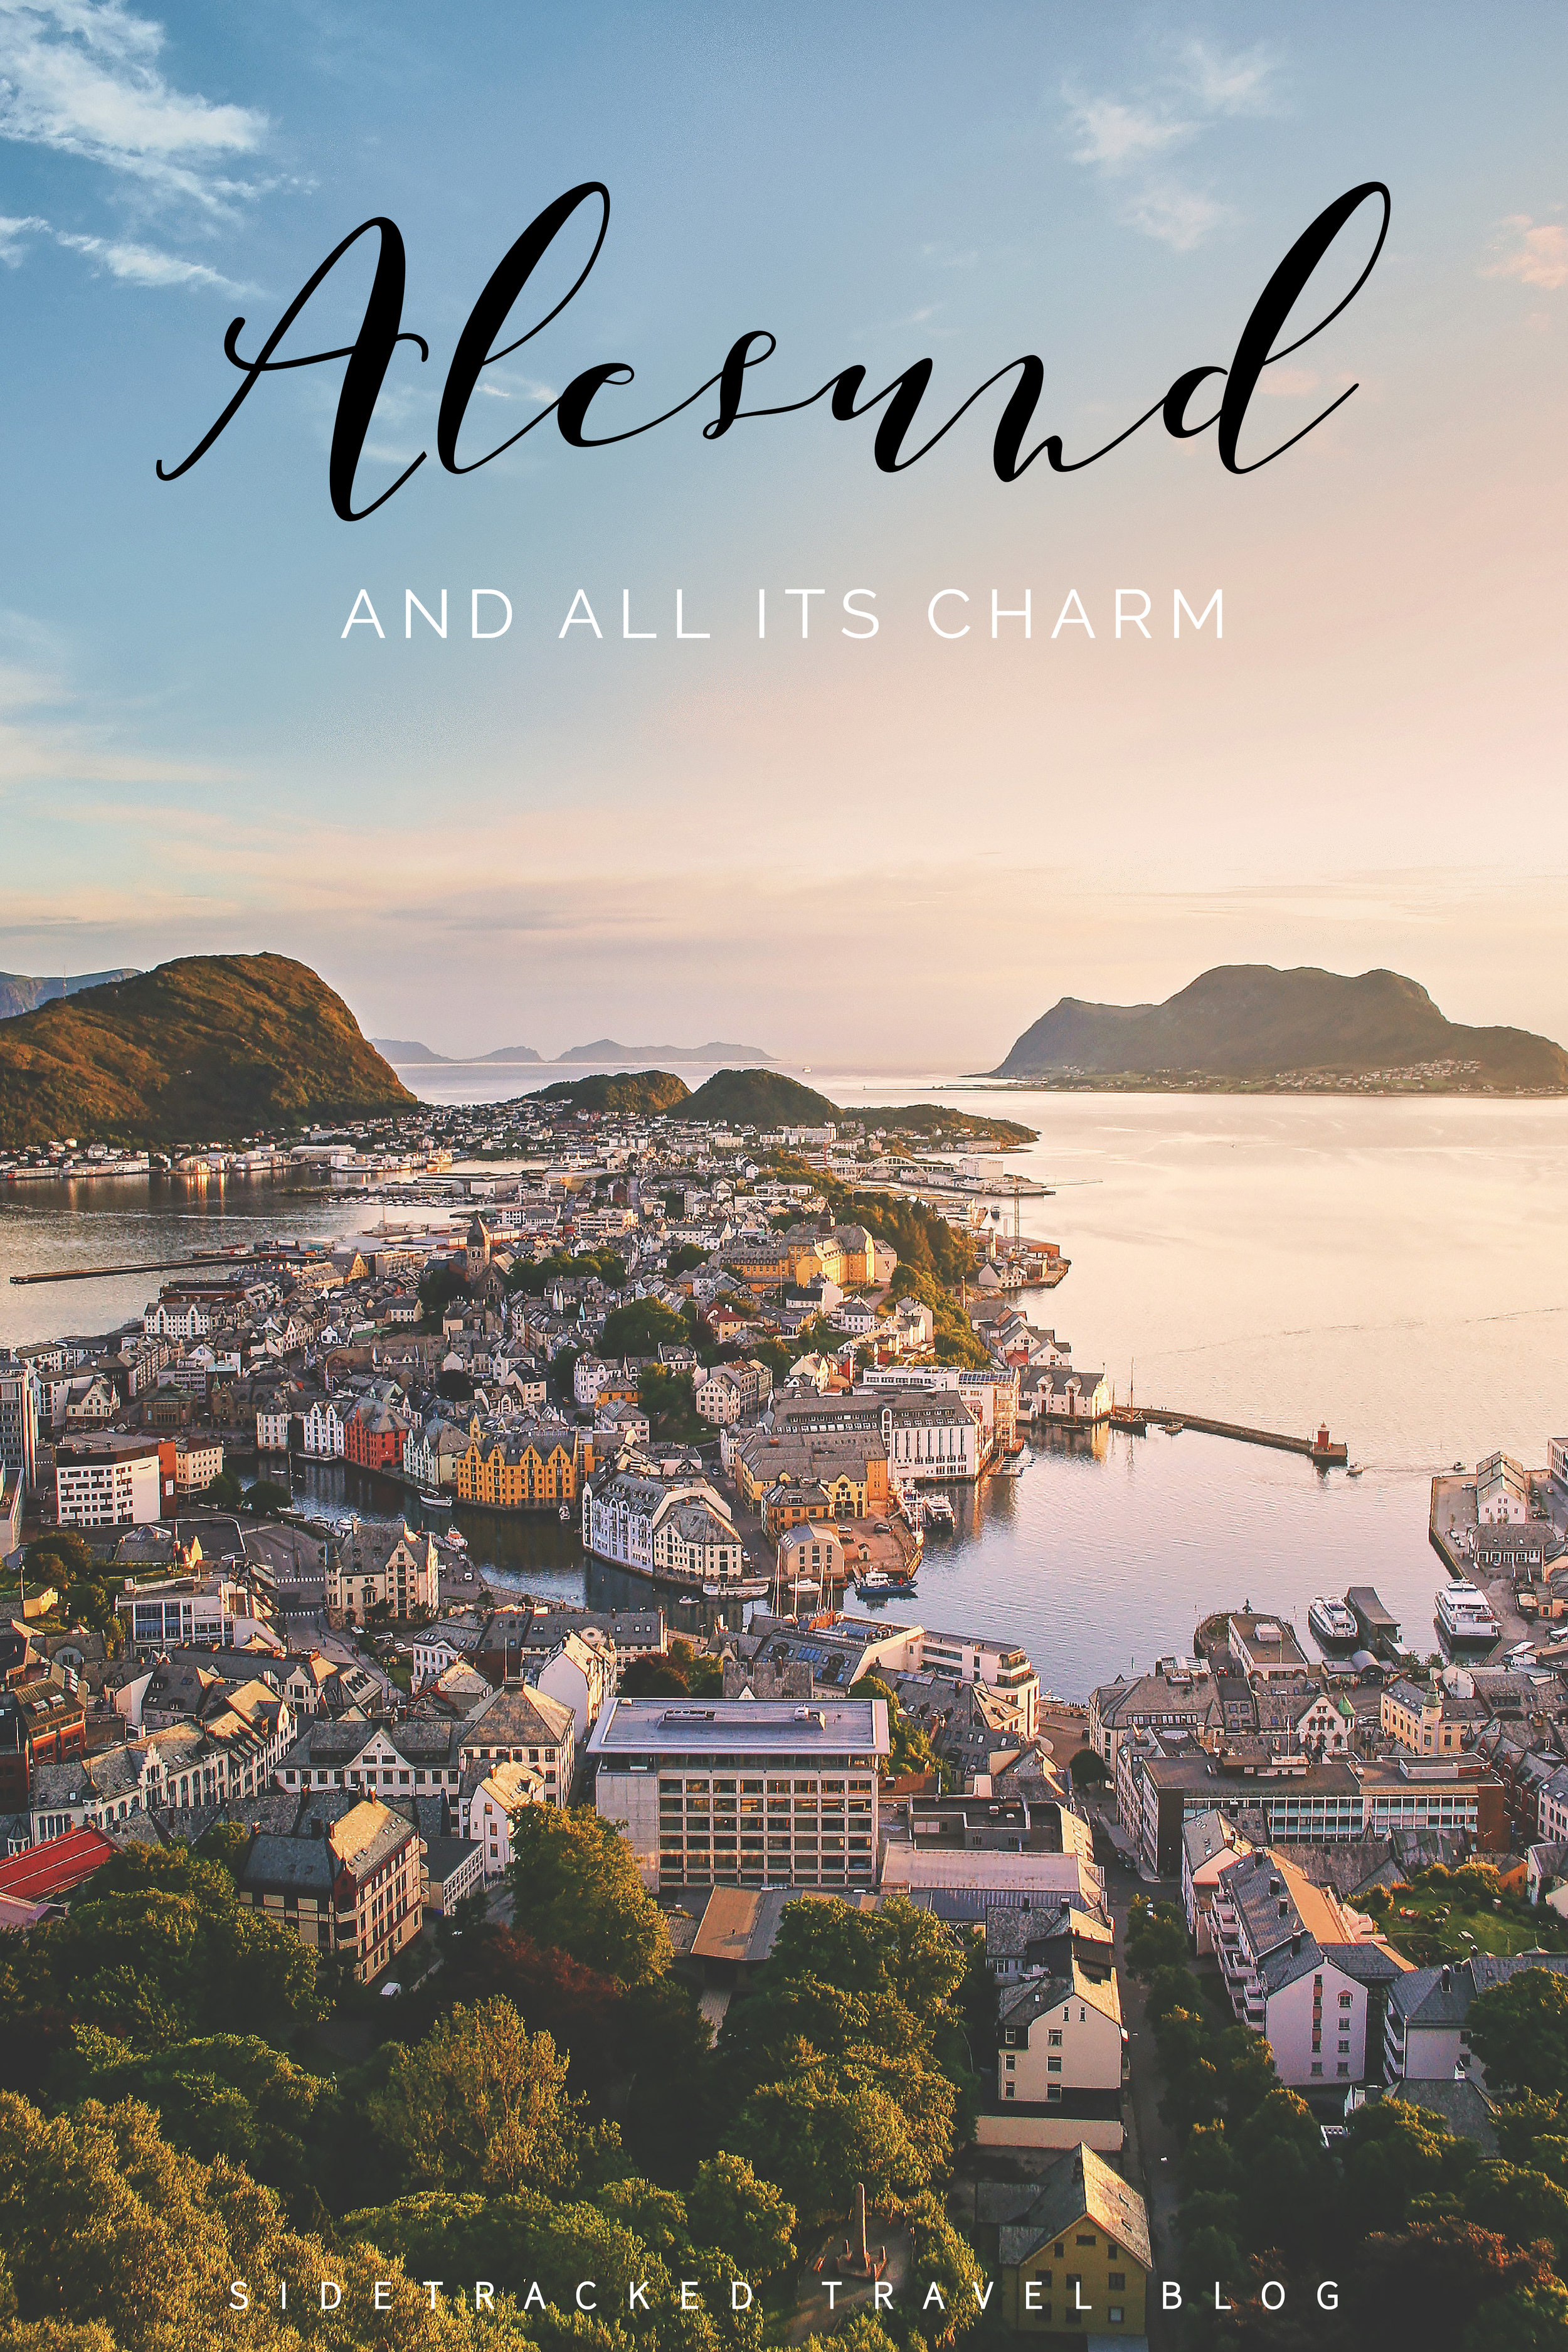 Equal parts magical and eccentric, Ålesund is one of the most unique places I've ever visited in Europe. Here are some of my favorite photos from this lively Norwegian town!